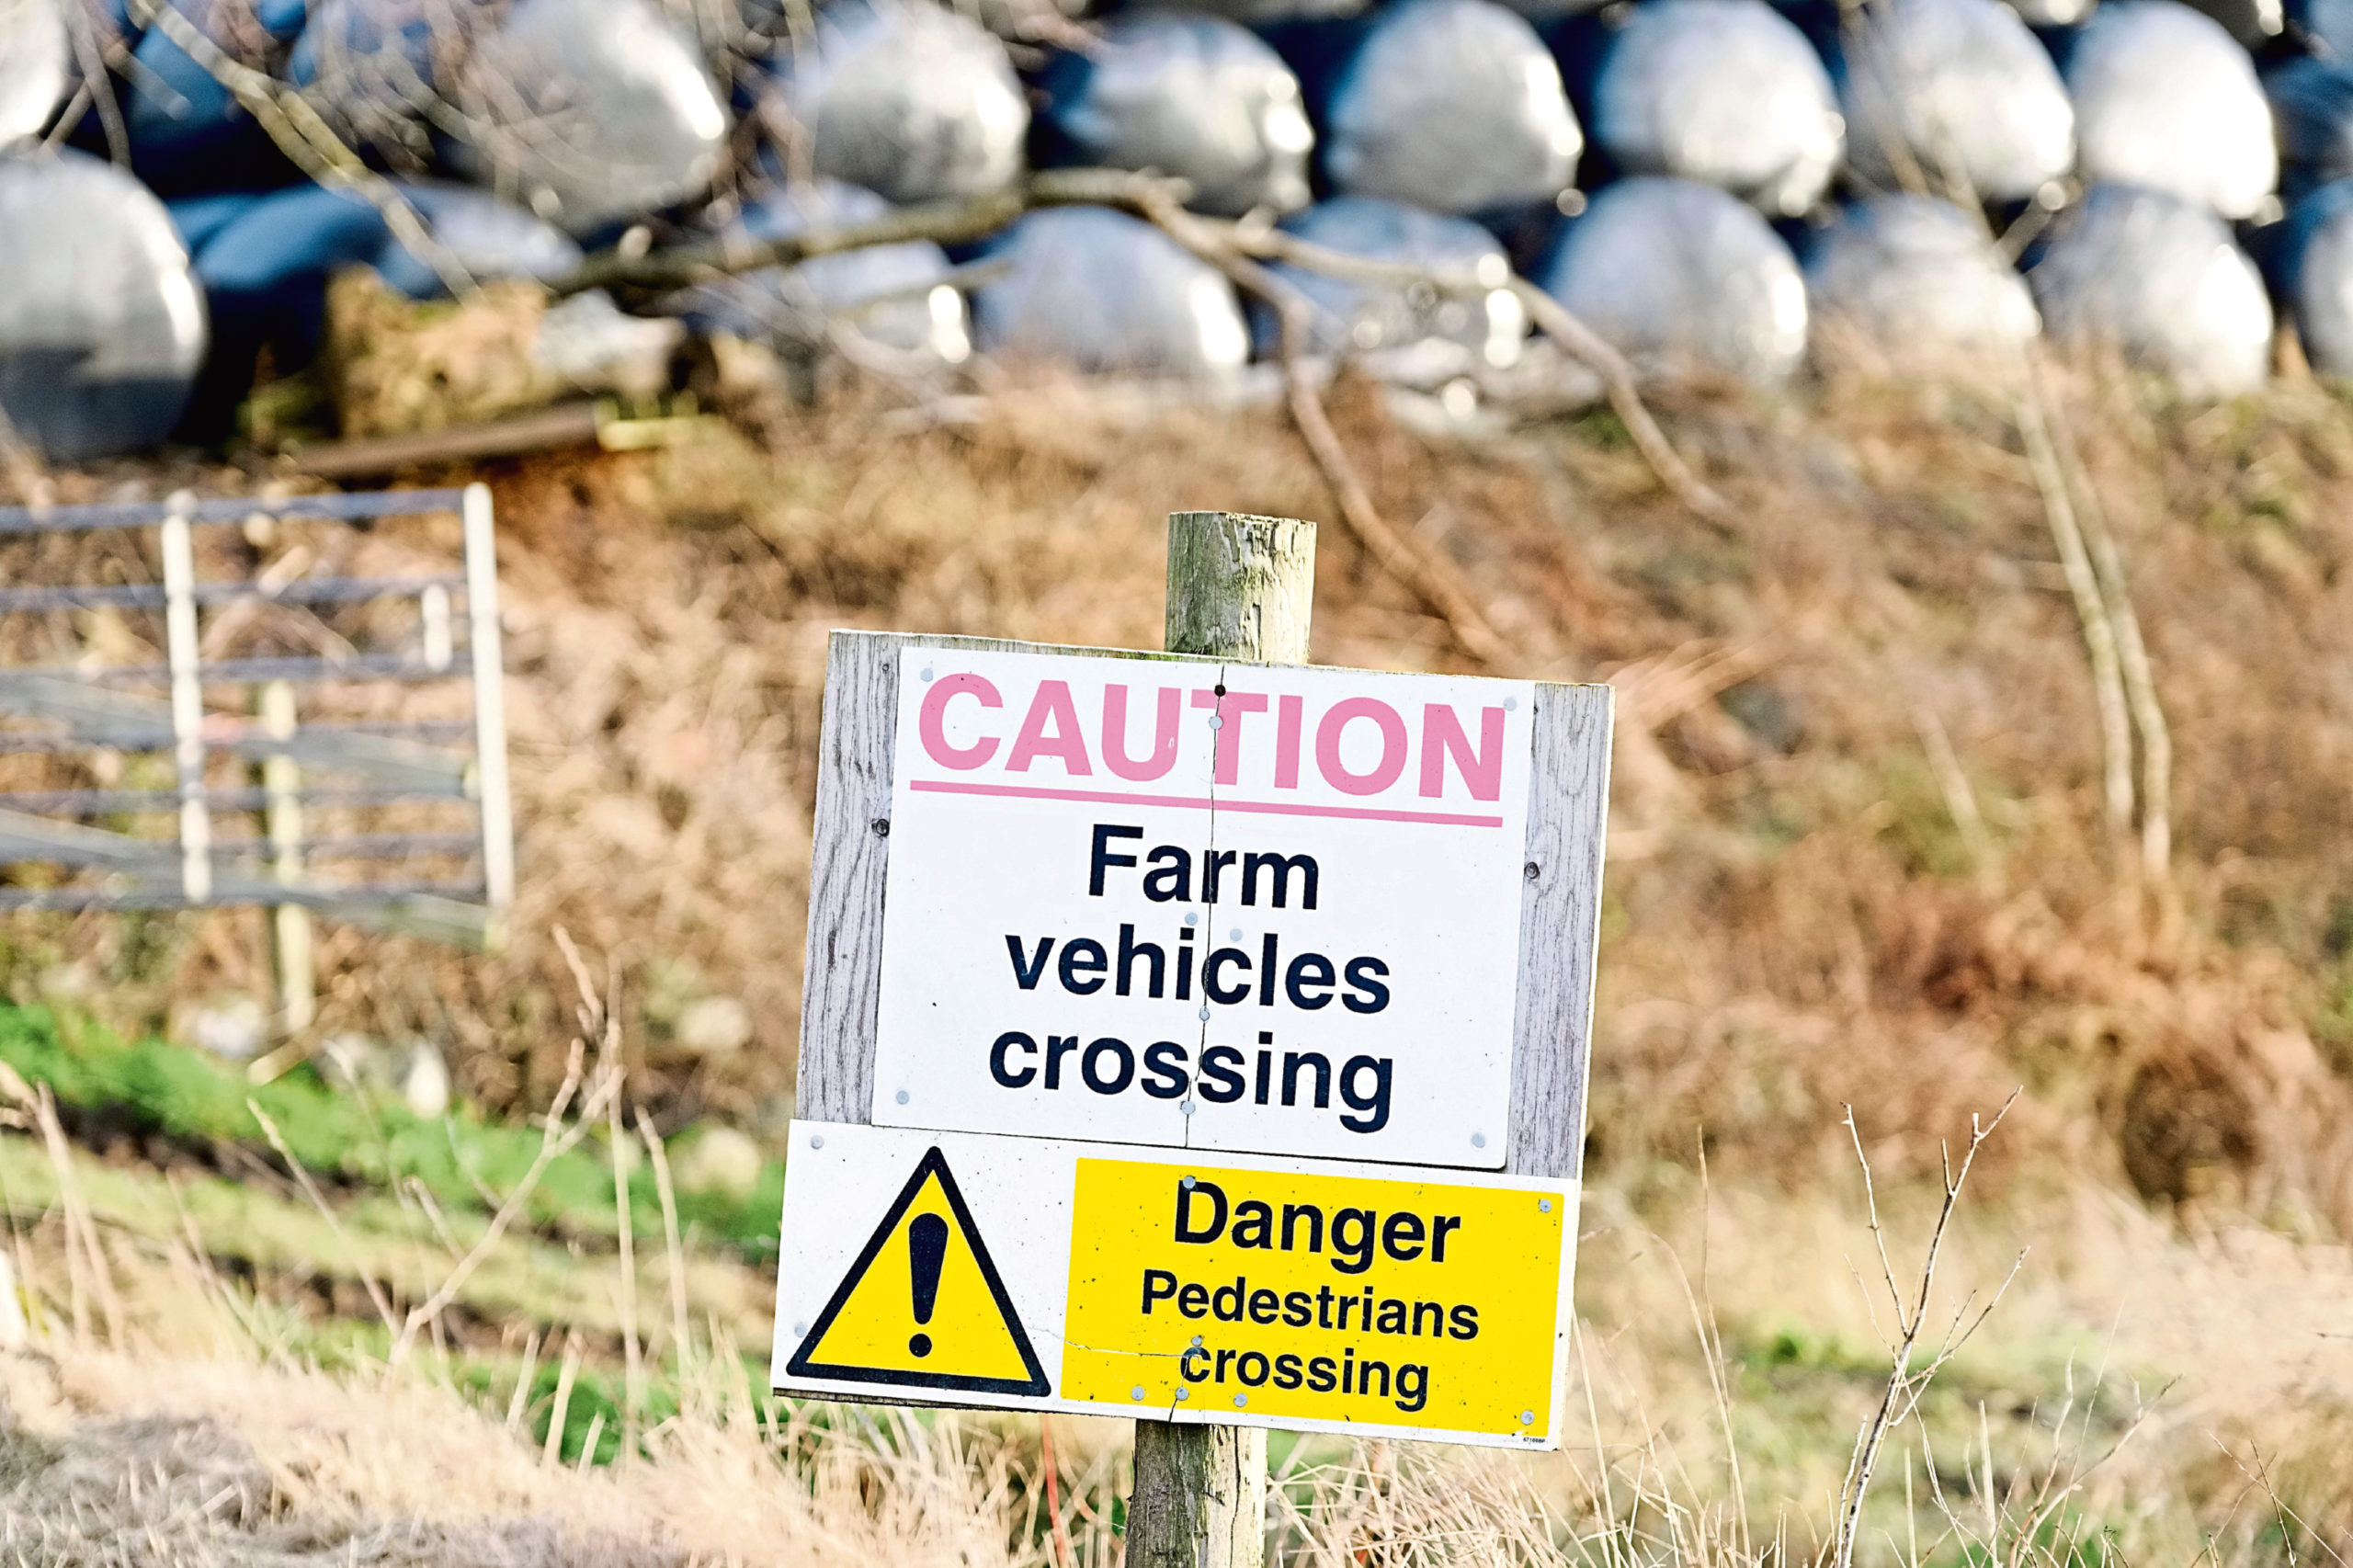 Children aged under 13 are specifically prohibited from driving or riding on any agricultural machine.